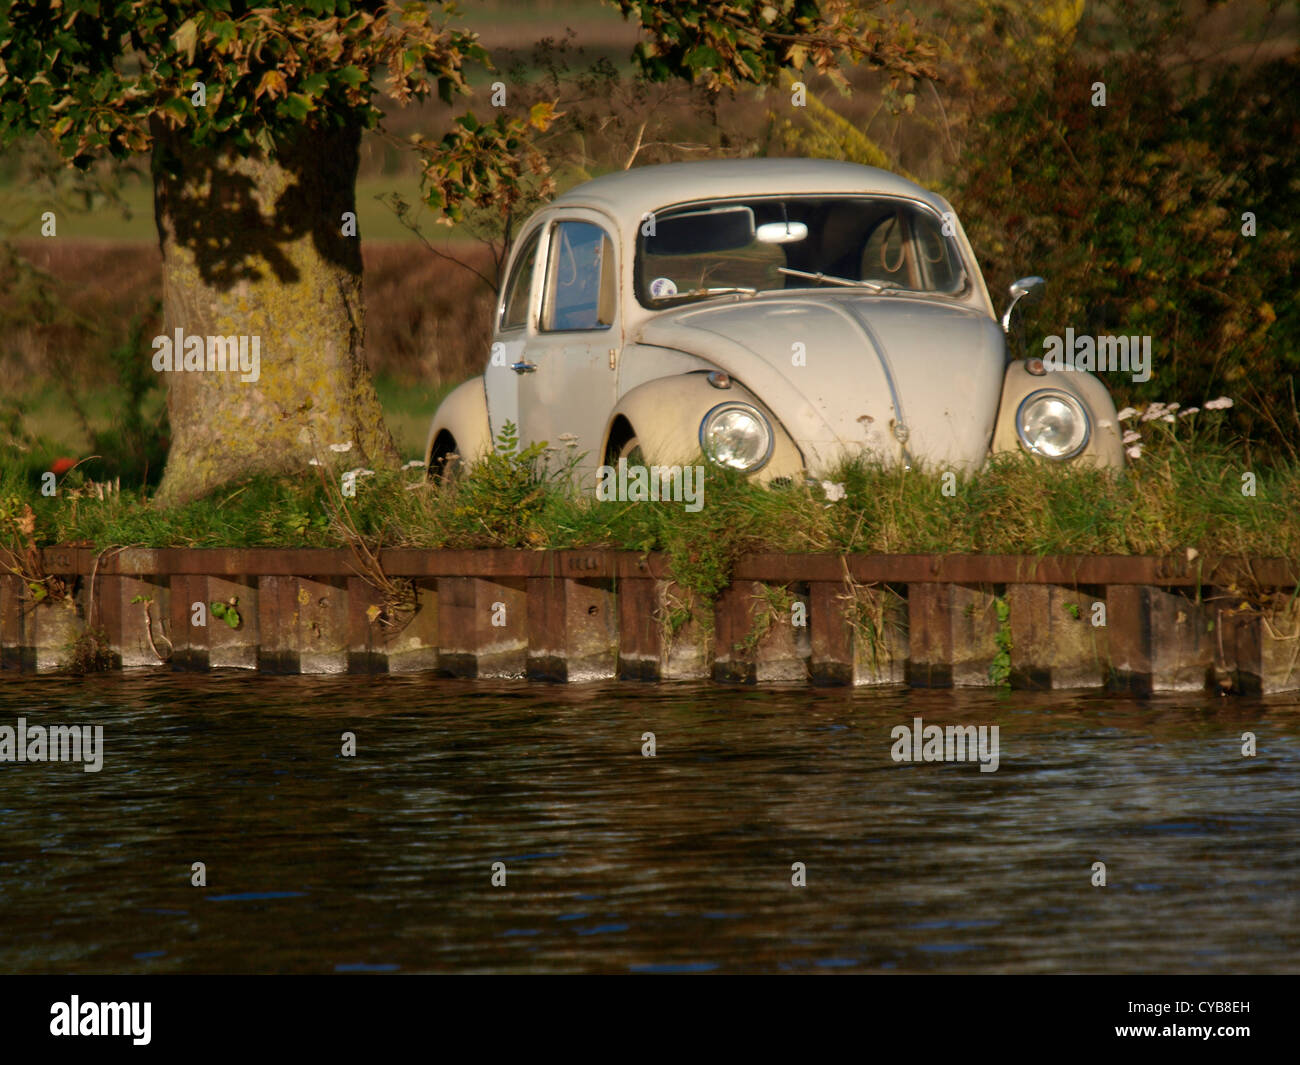 Classic VW Beetle parked under a tree next to a canal, UK - Stock Image